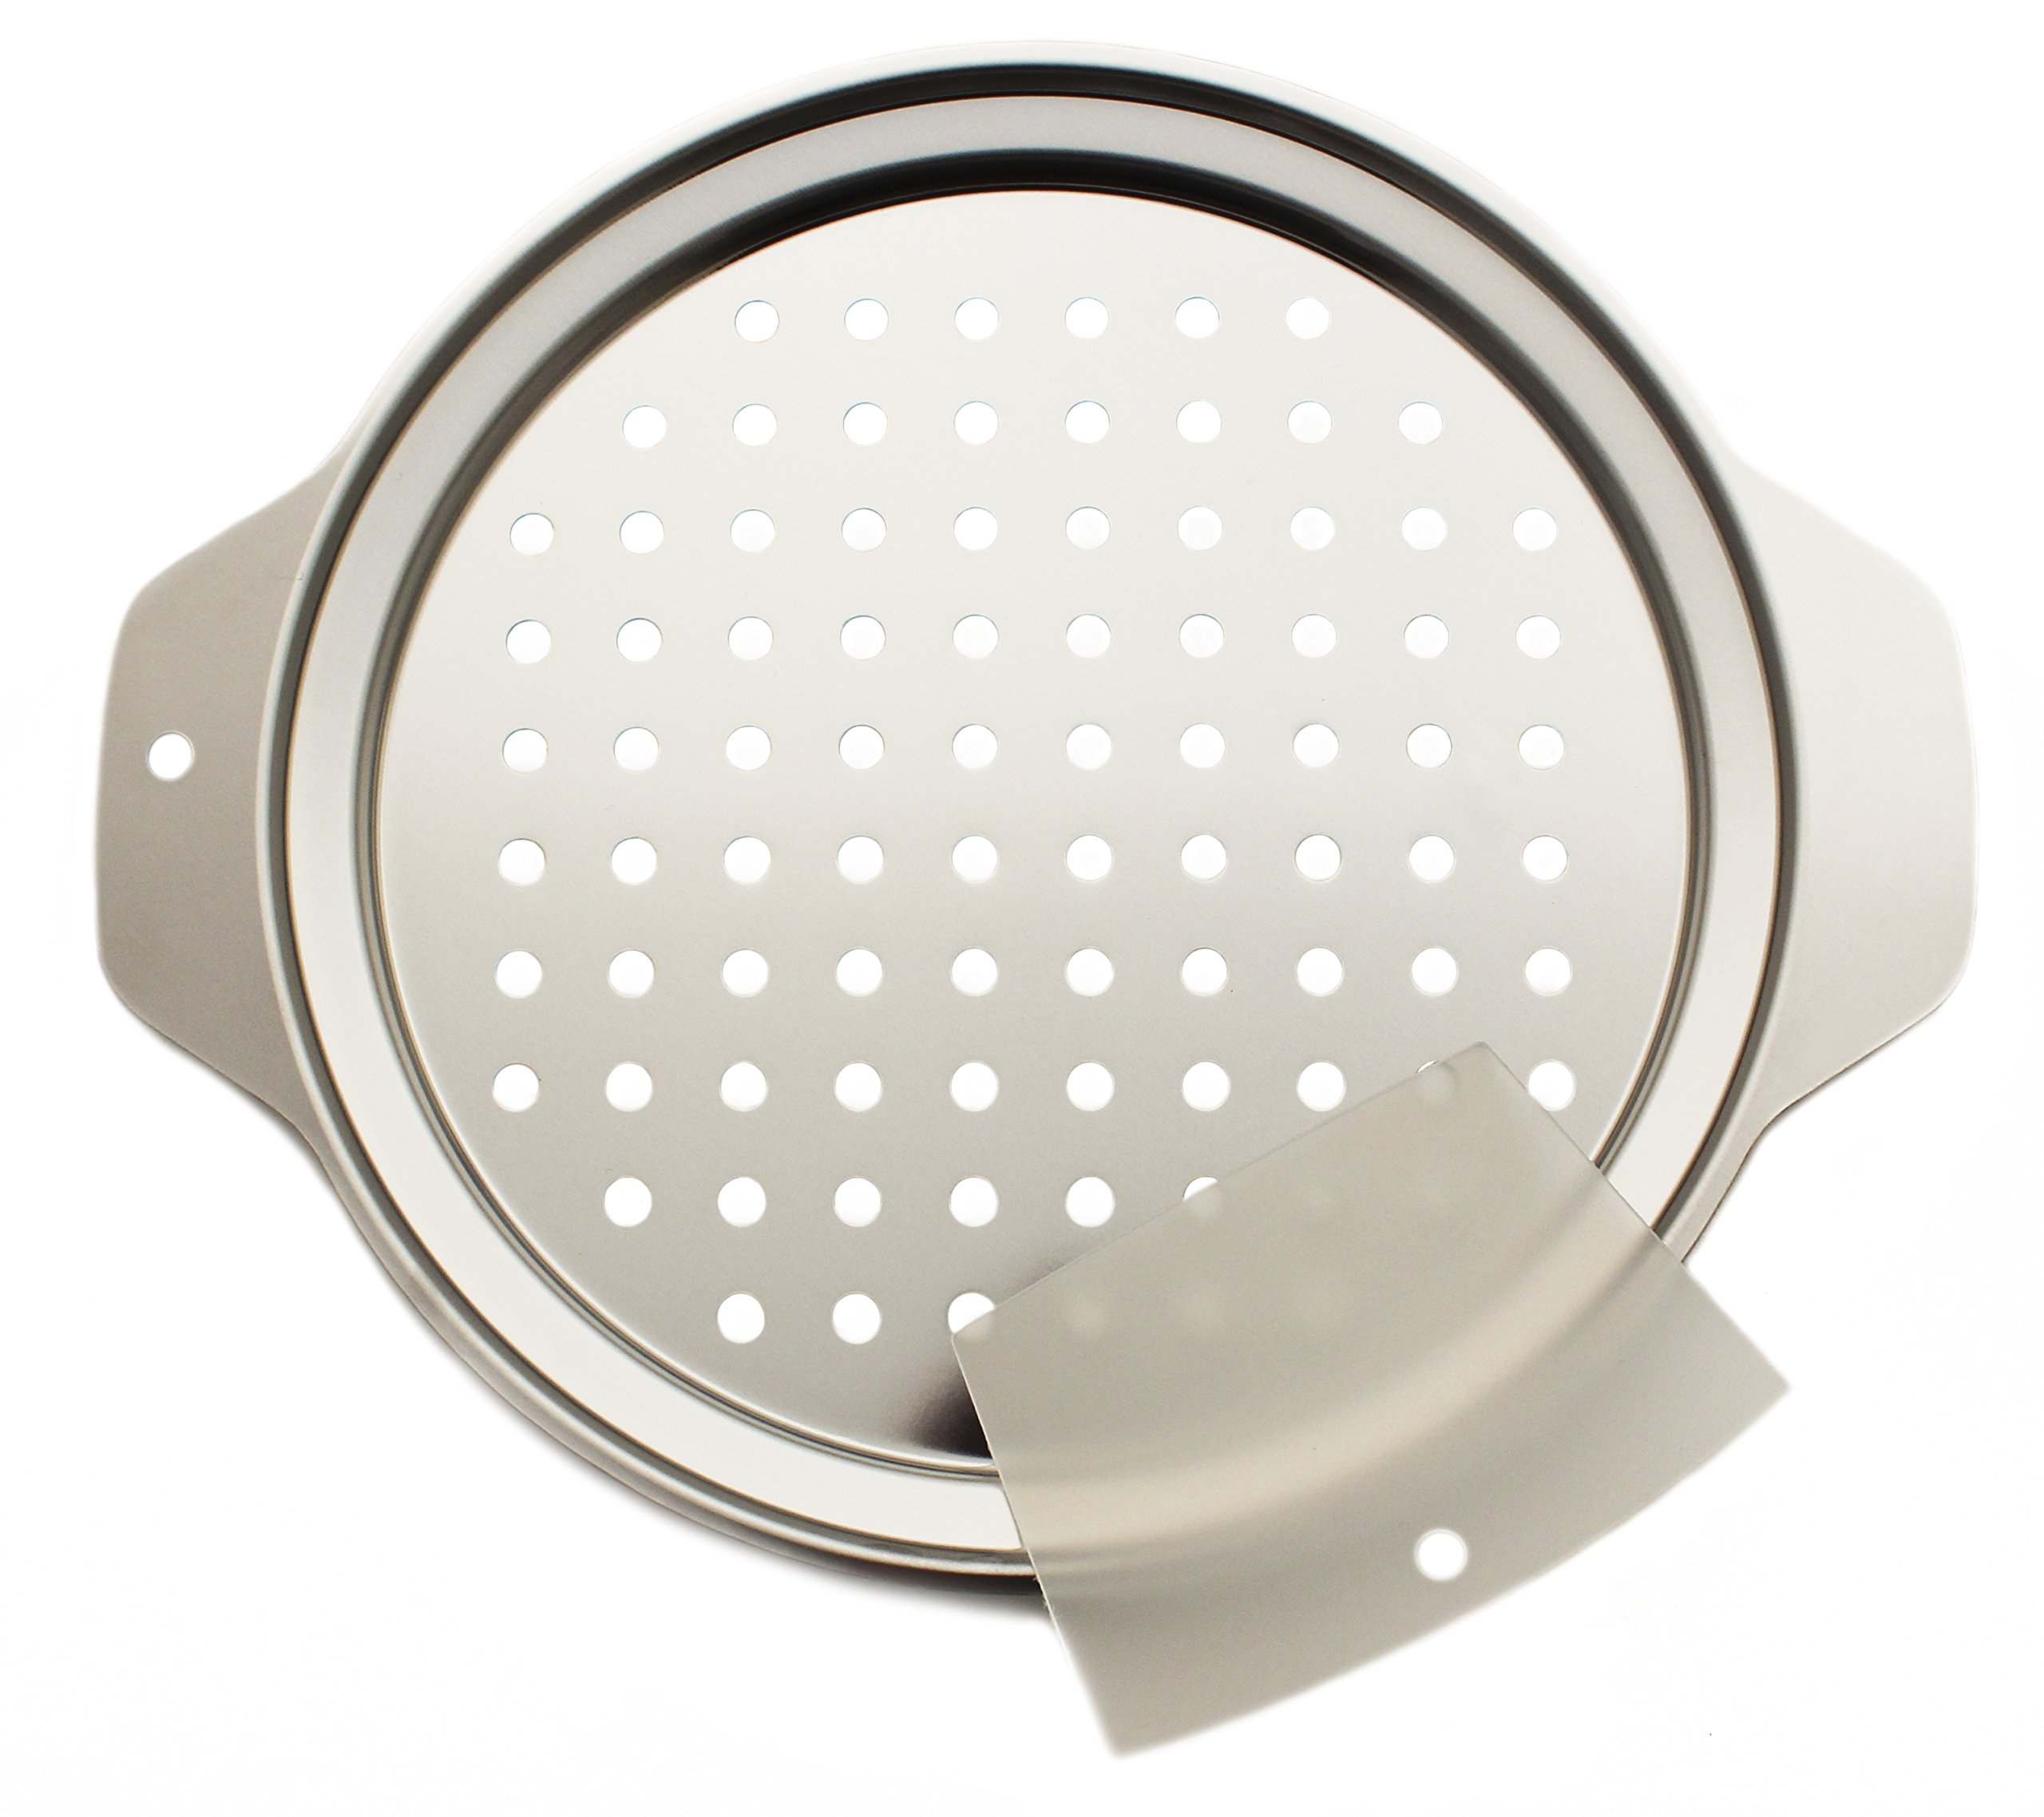 Zoie + Chloe Stainless Steel Spaetzle Maker Lid with Scraper by Zoie + Chloe